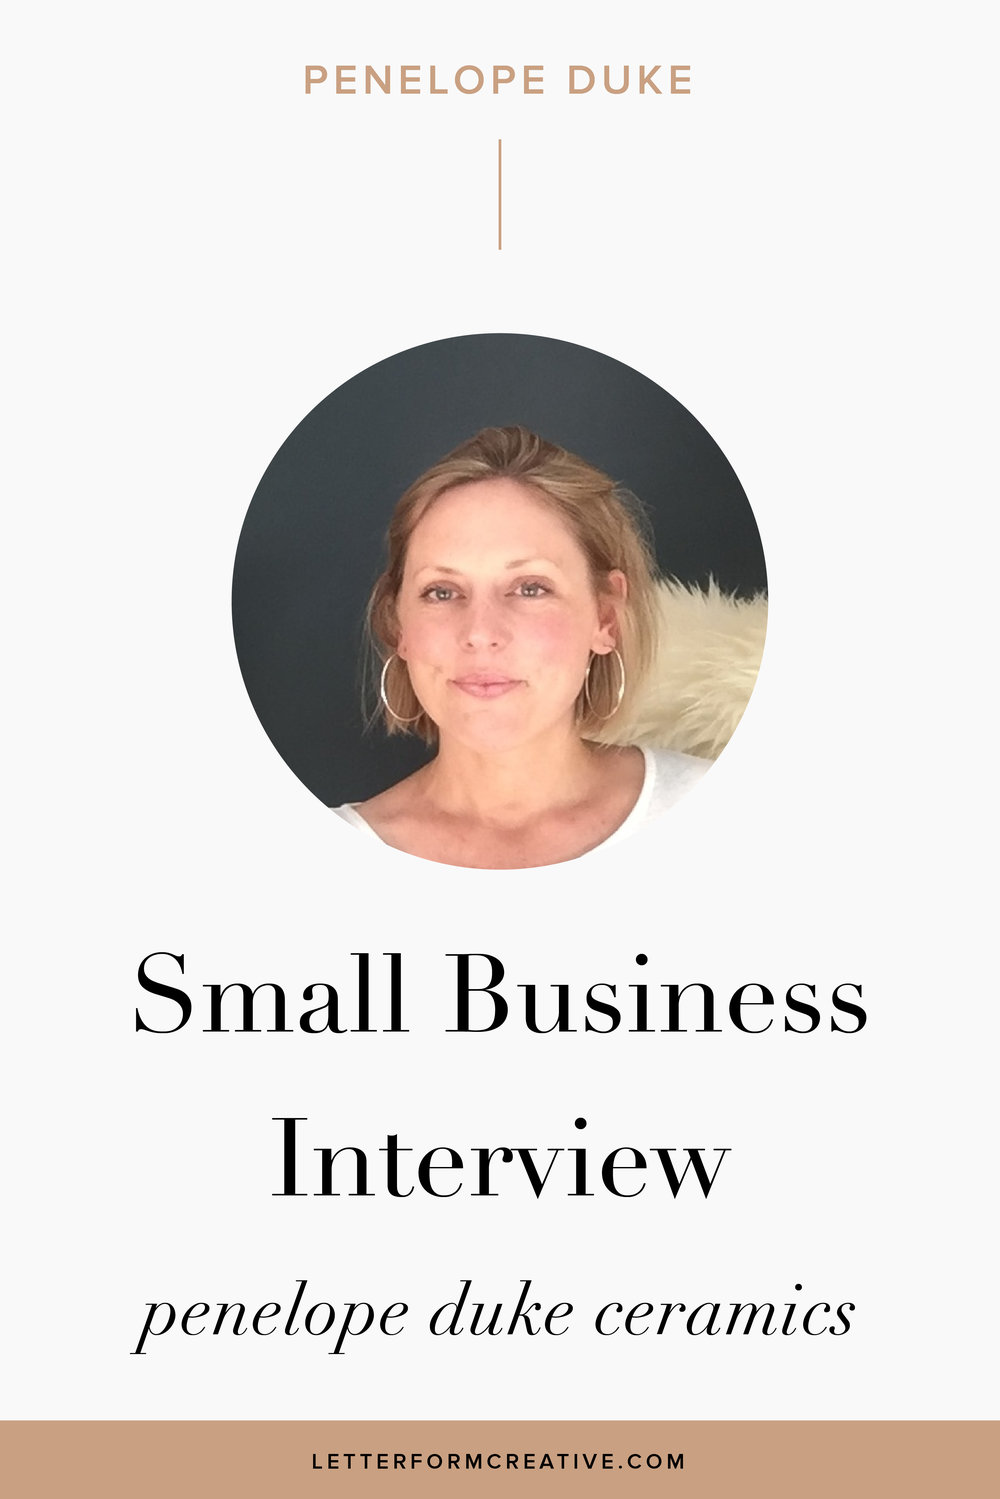 """There are no restrictions on what I can and cannot do unless I put them there myself."" That is one of many great quotes from my interview with small business owner, Penelope Duke.  As an entrepreneur, she is no stranger to the challenges of the work life balance, being disciplined, and having many late nights. She also knows the great benefits of freedom. flexibility, AND INSPIRATION that come with being her own boss. INSTAGRAM HAS BEEN A POWERFUL TOOL IN THE GROWTH OF HER BUSINESS, AS ITS BEEN THE SOLE FORM OF marketing and advertising SHE USES FOR her beautiful ceramics. CLICK THROUGH FOR MORE SMALL BUSINESS IDEAS AND TIPS!"